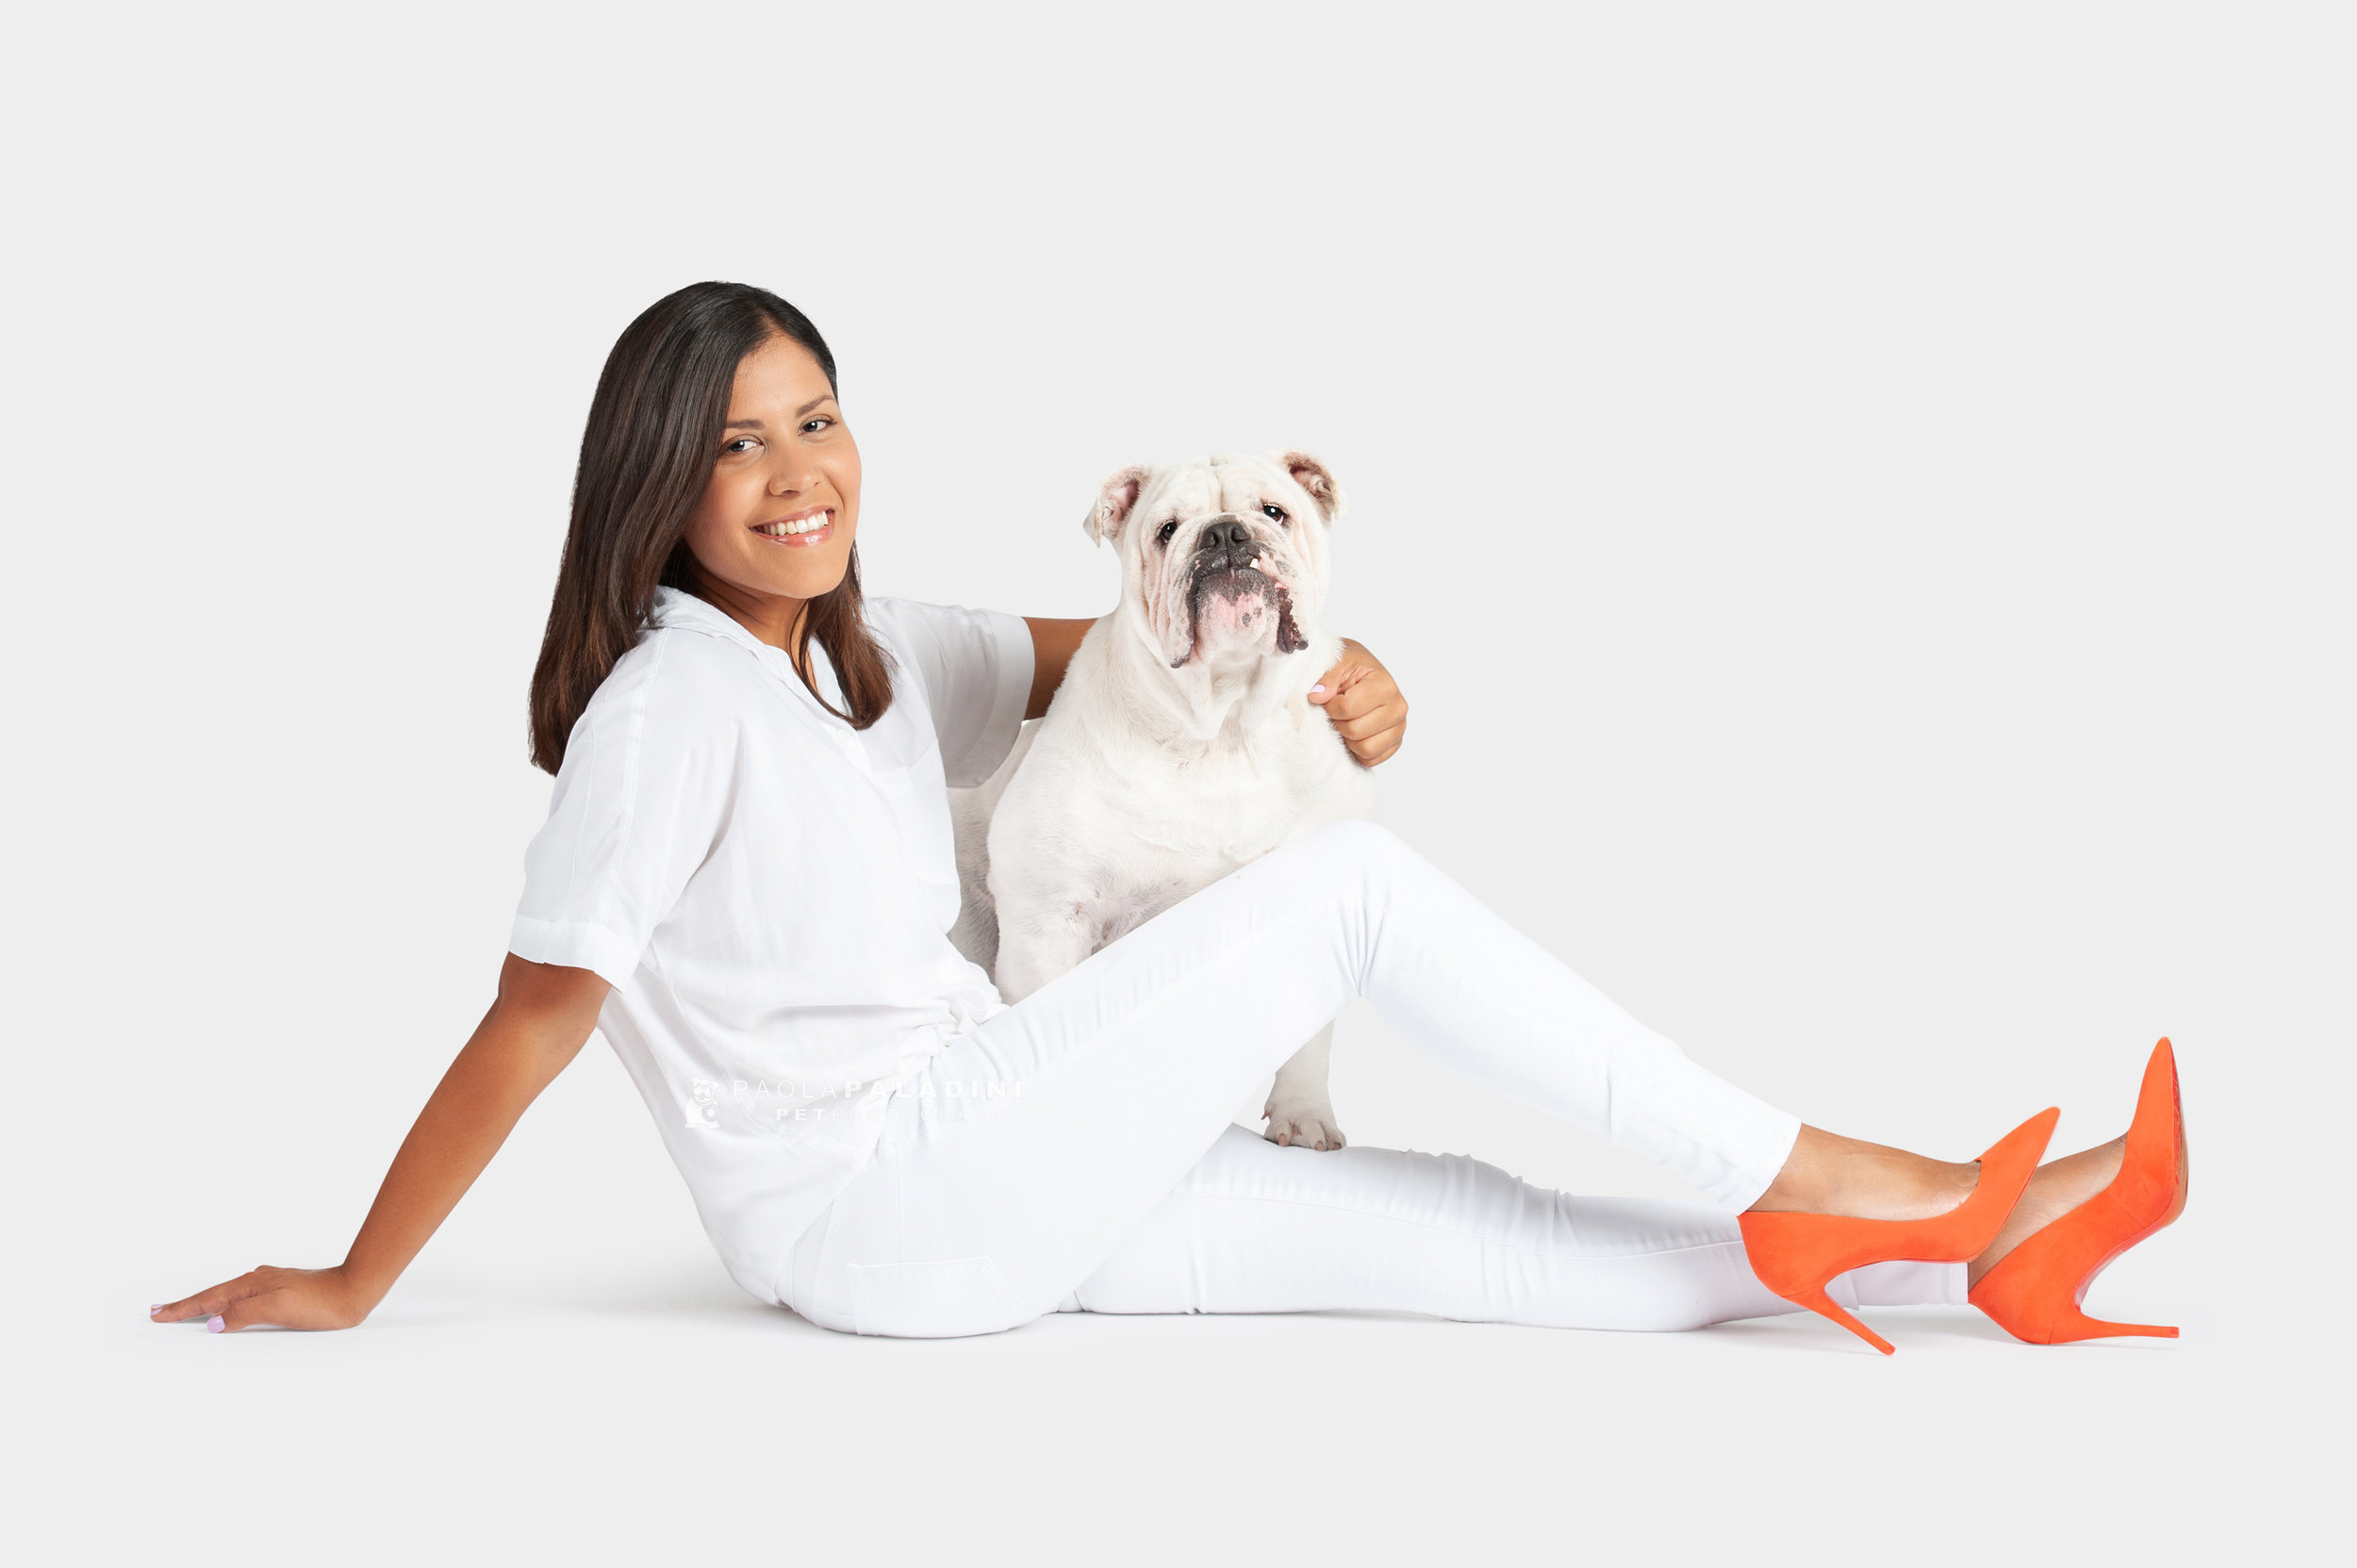 Paola-Paladini-White-on-White-Hounds-and-Heels-Bulldog-3